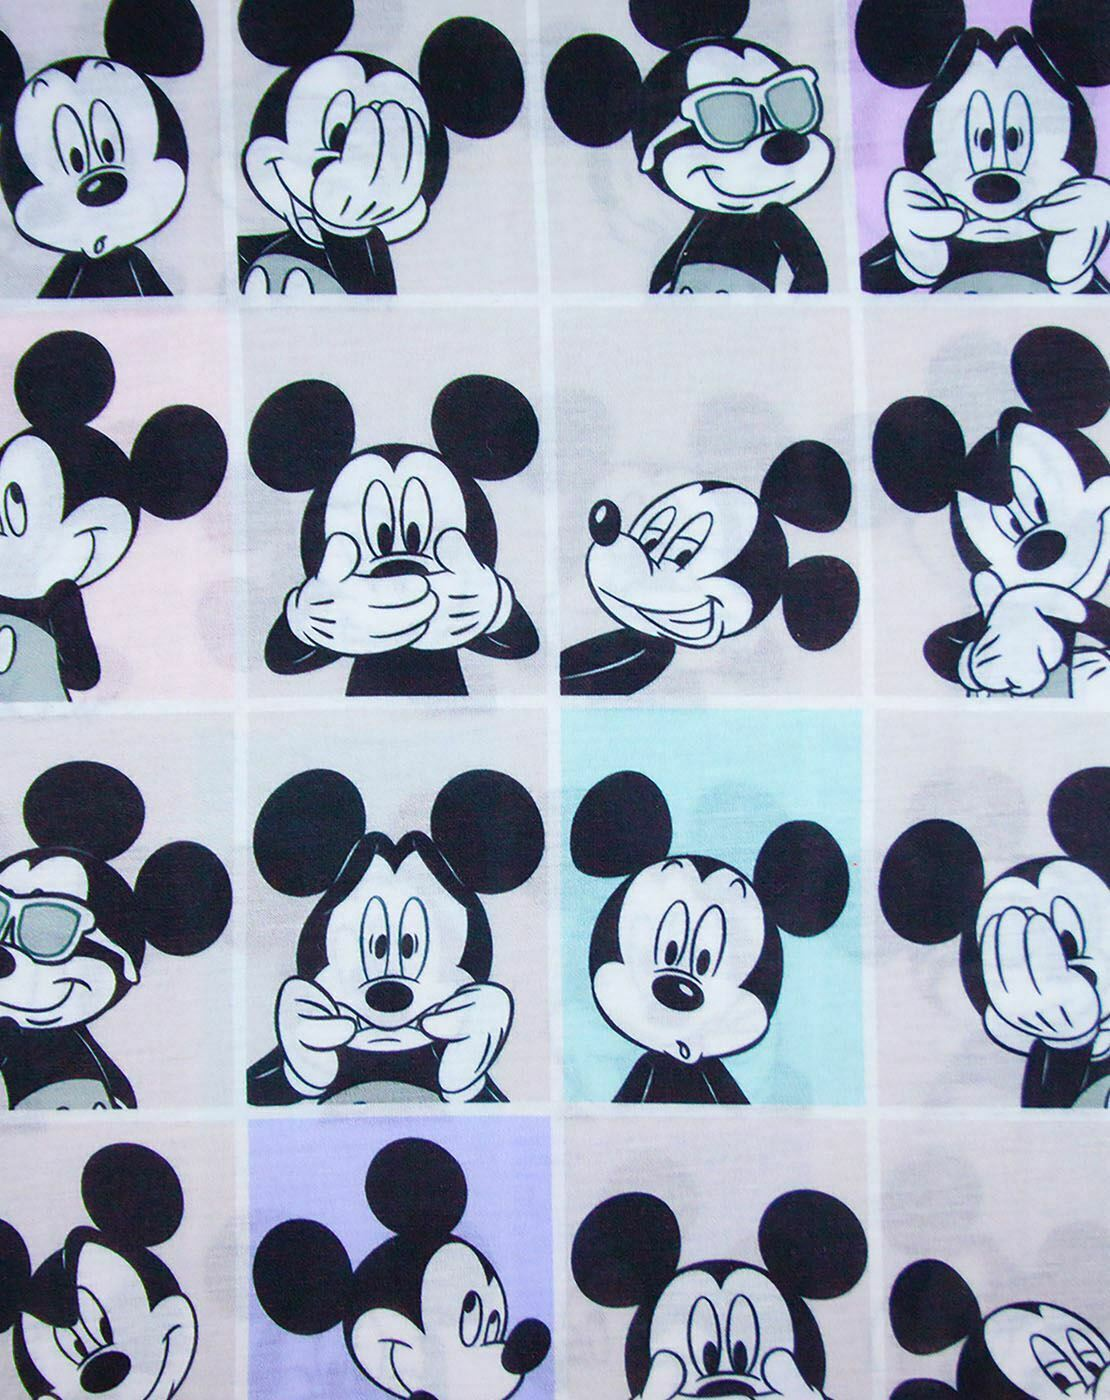 Disney-Mickey-Mouse-Photobooth-All-Over-Print-Women-039-s-T-shirt thumbnail 10